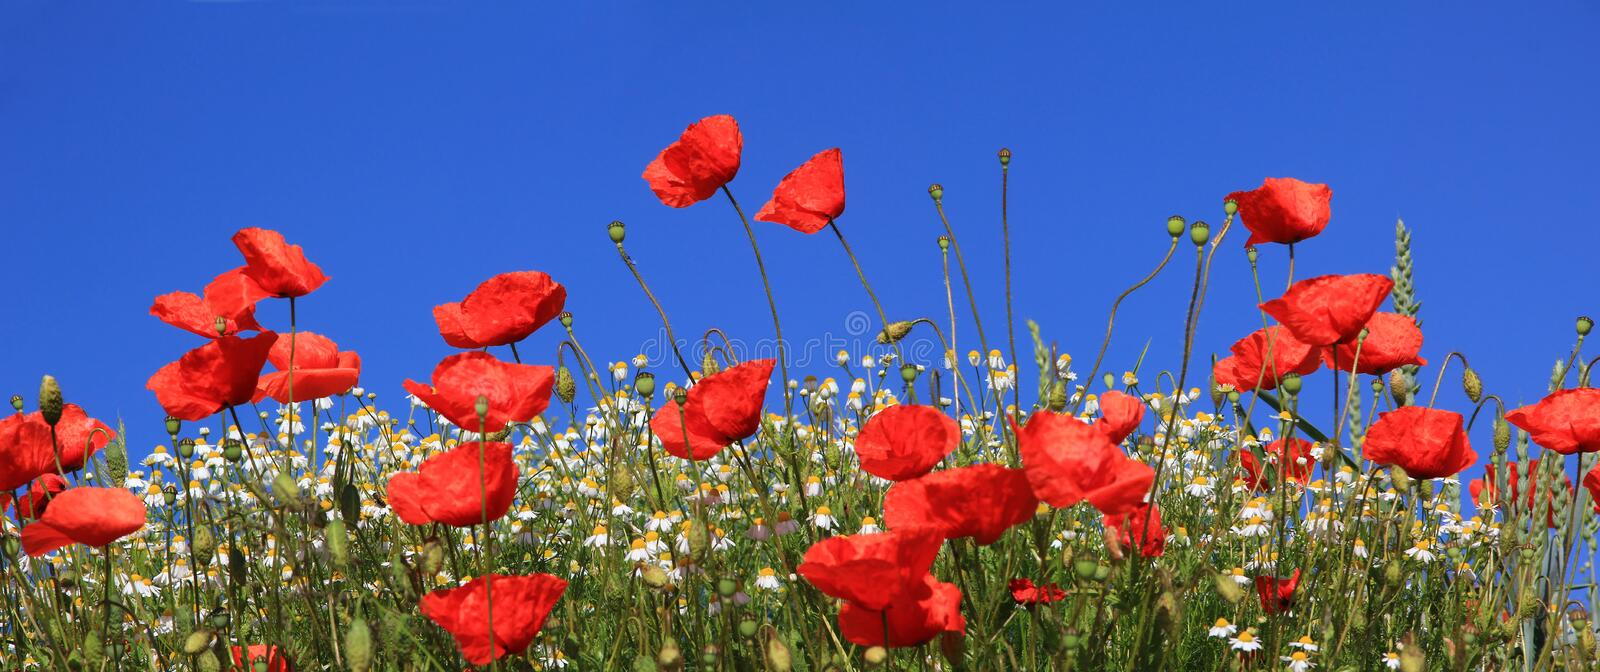 Bright red poppy flowers and marguerites against blue sky royalty free stock images